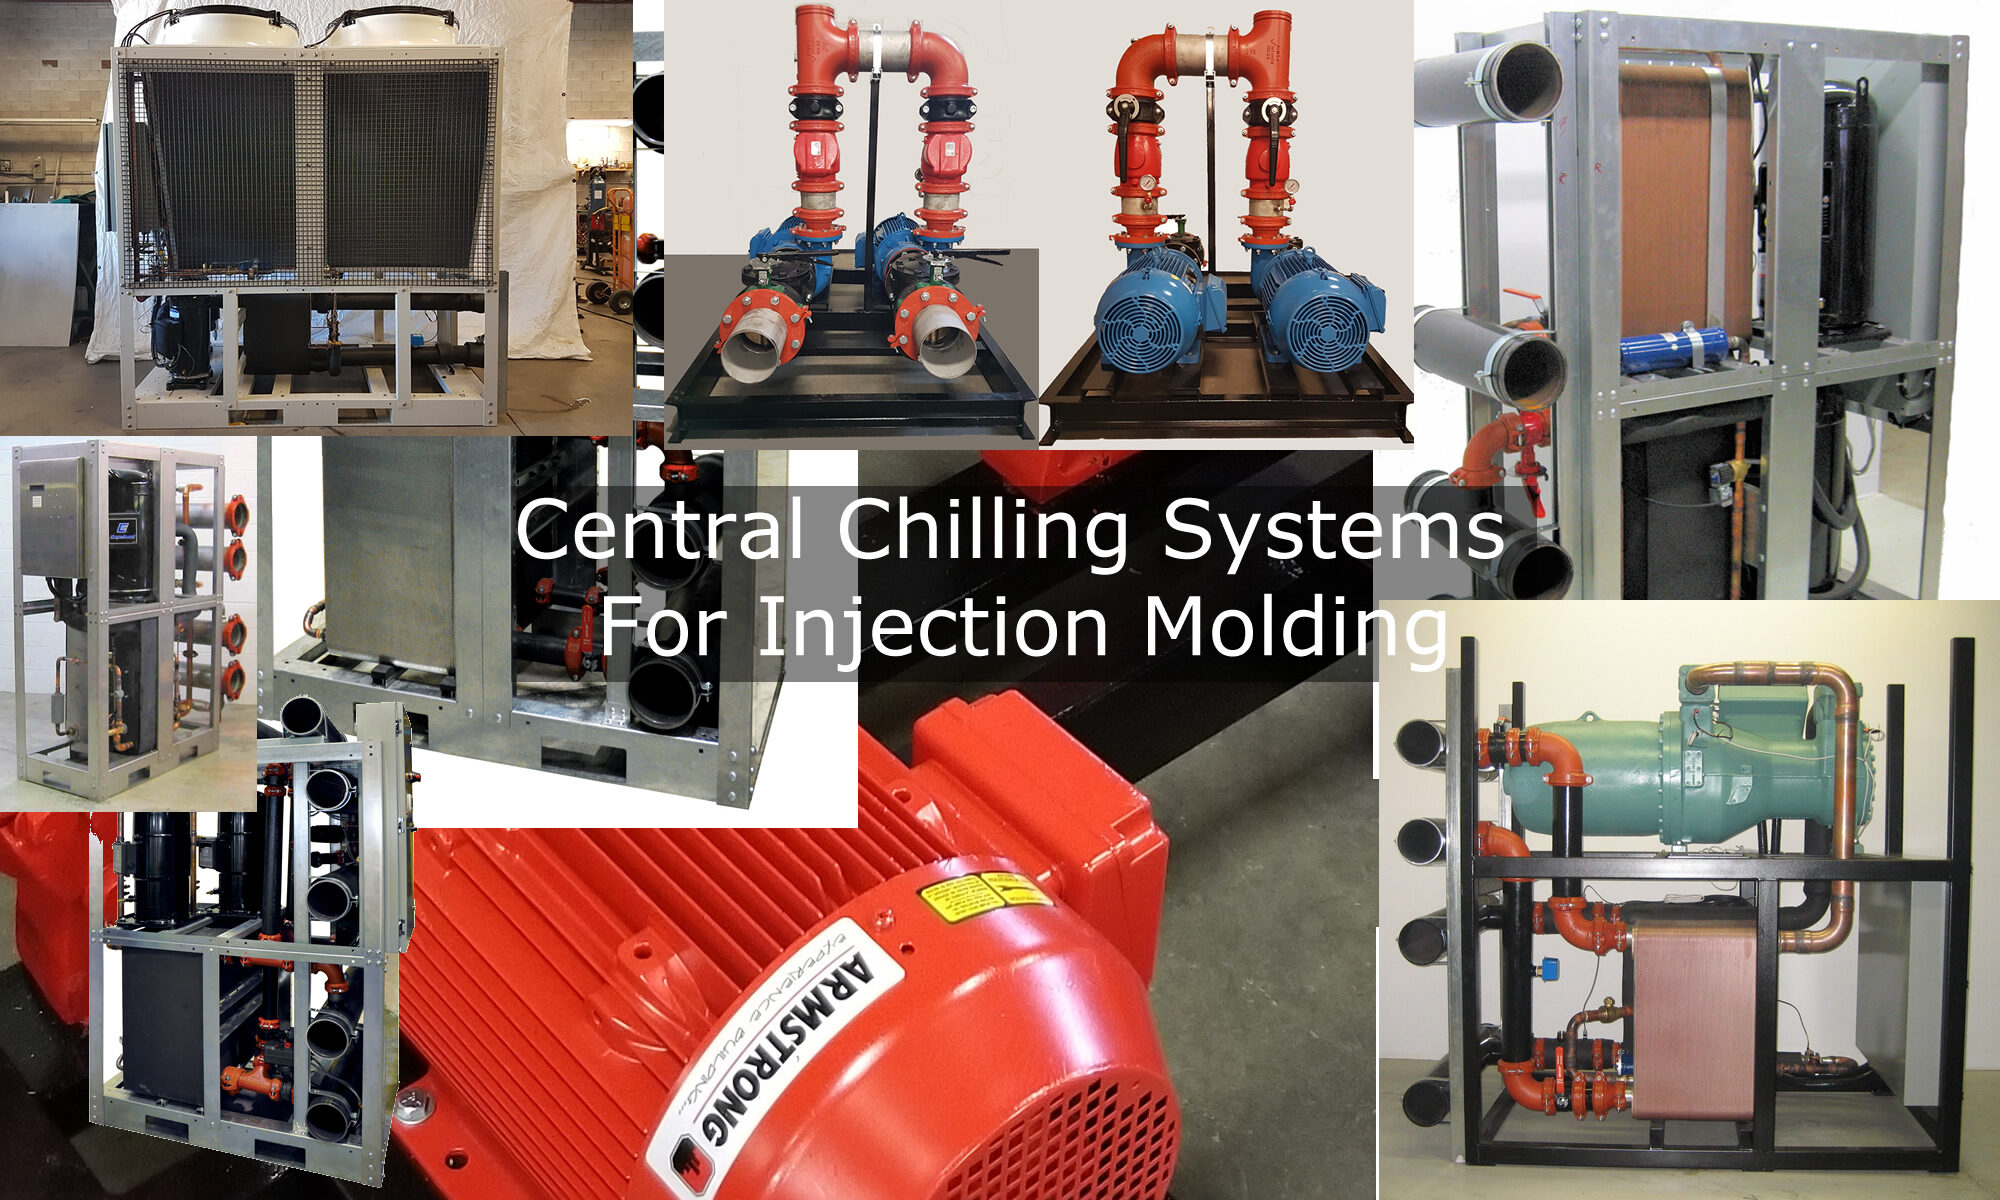 Central Chilling Systems For Injection Molding